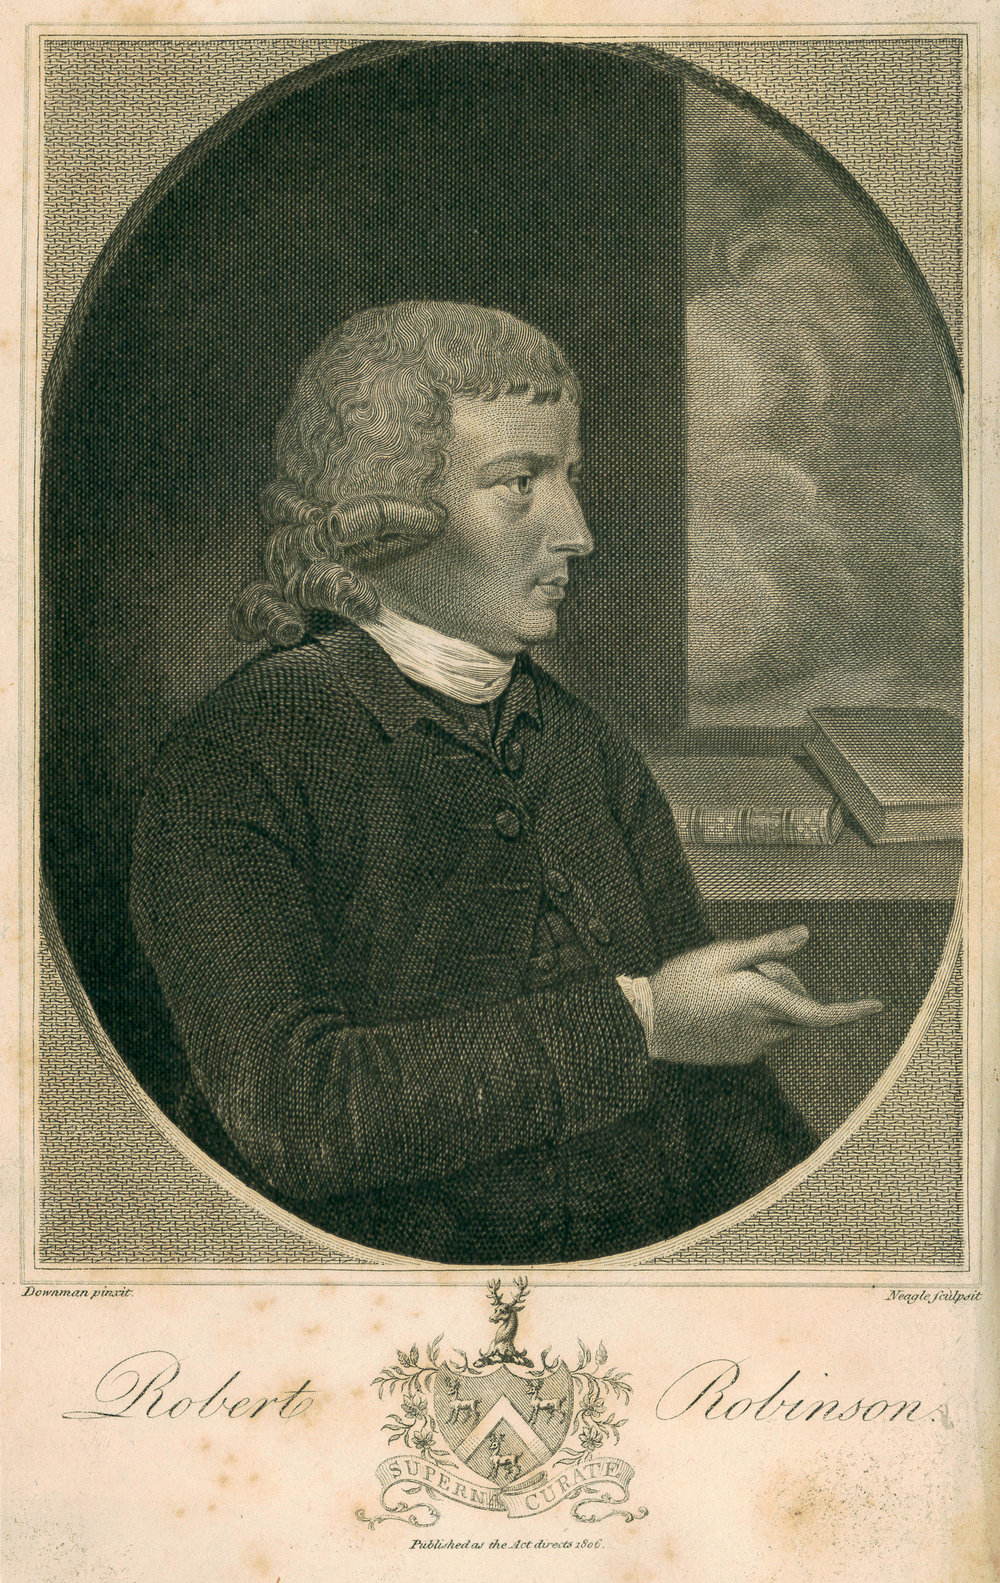 Robert Robinson,  from  Miscellaneous Works of Robert Robinson  (1807).